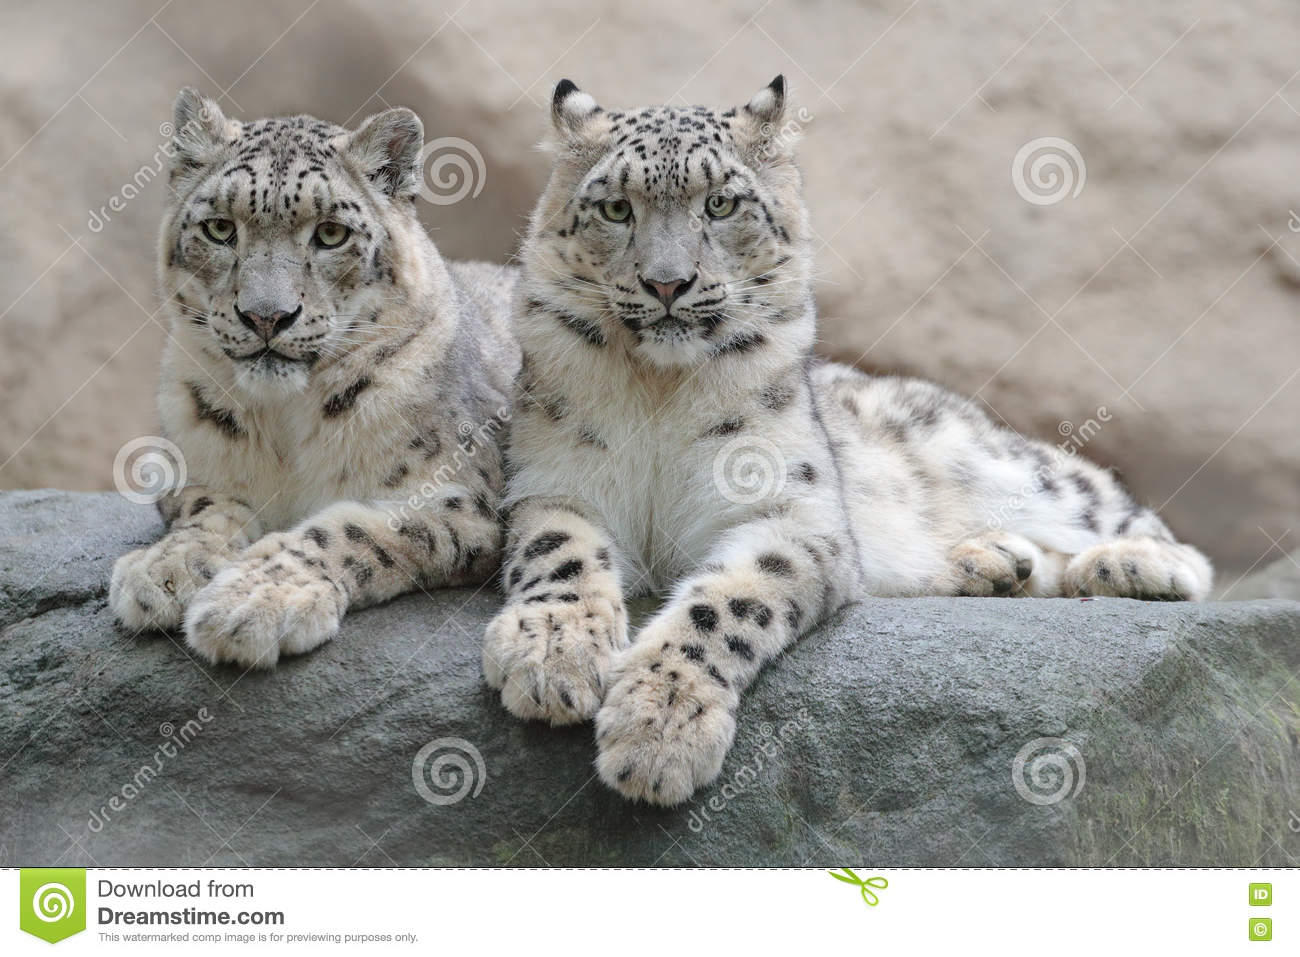 Pair of snow leopard with clear rock background, Hemis National Park, Kashmir, India. Wildlife scene from Asia. Detail portrait of